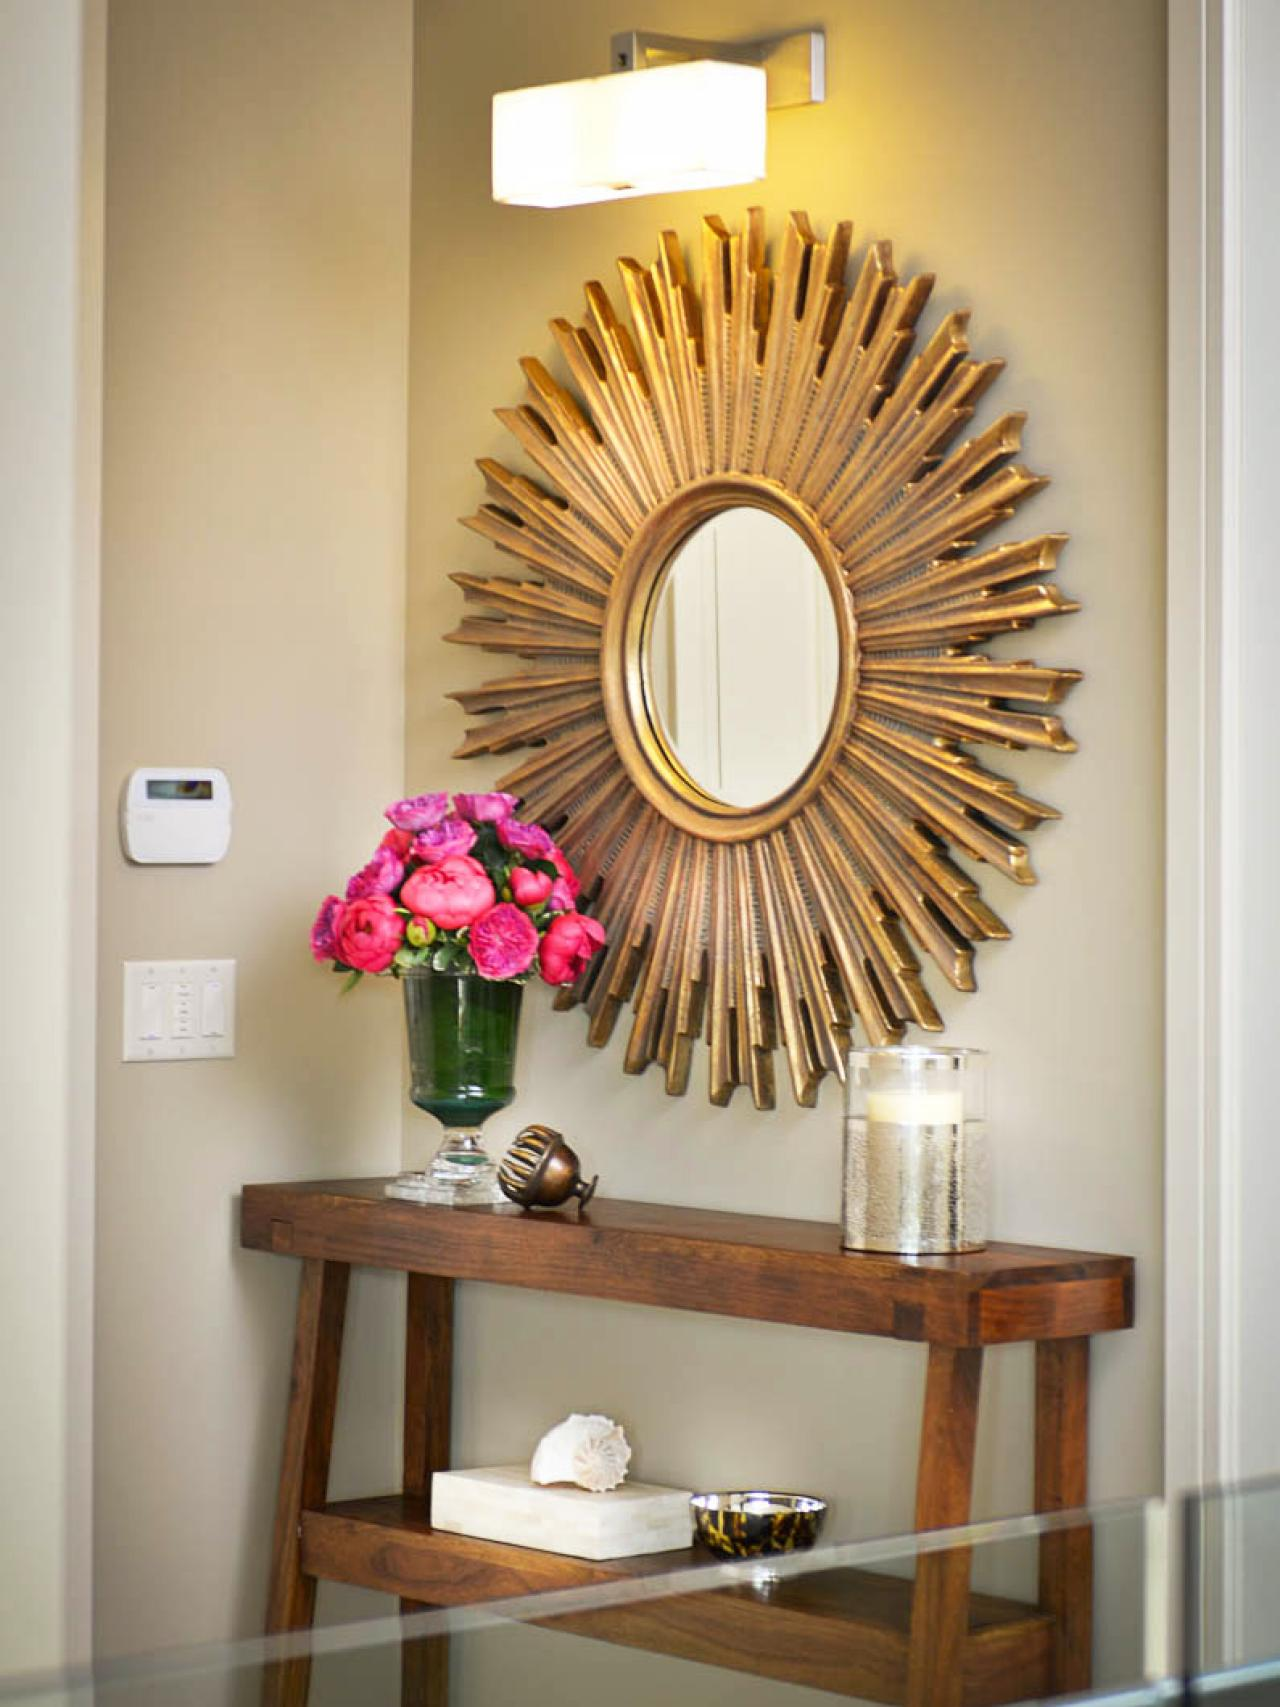 dp_dorothy-willetts-neutral-entry-table-mirror_s3x4-jpg-rend-hgtvcom-1280-1707